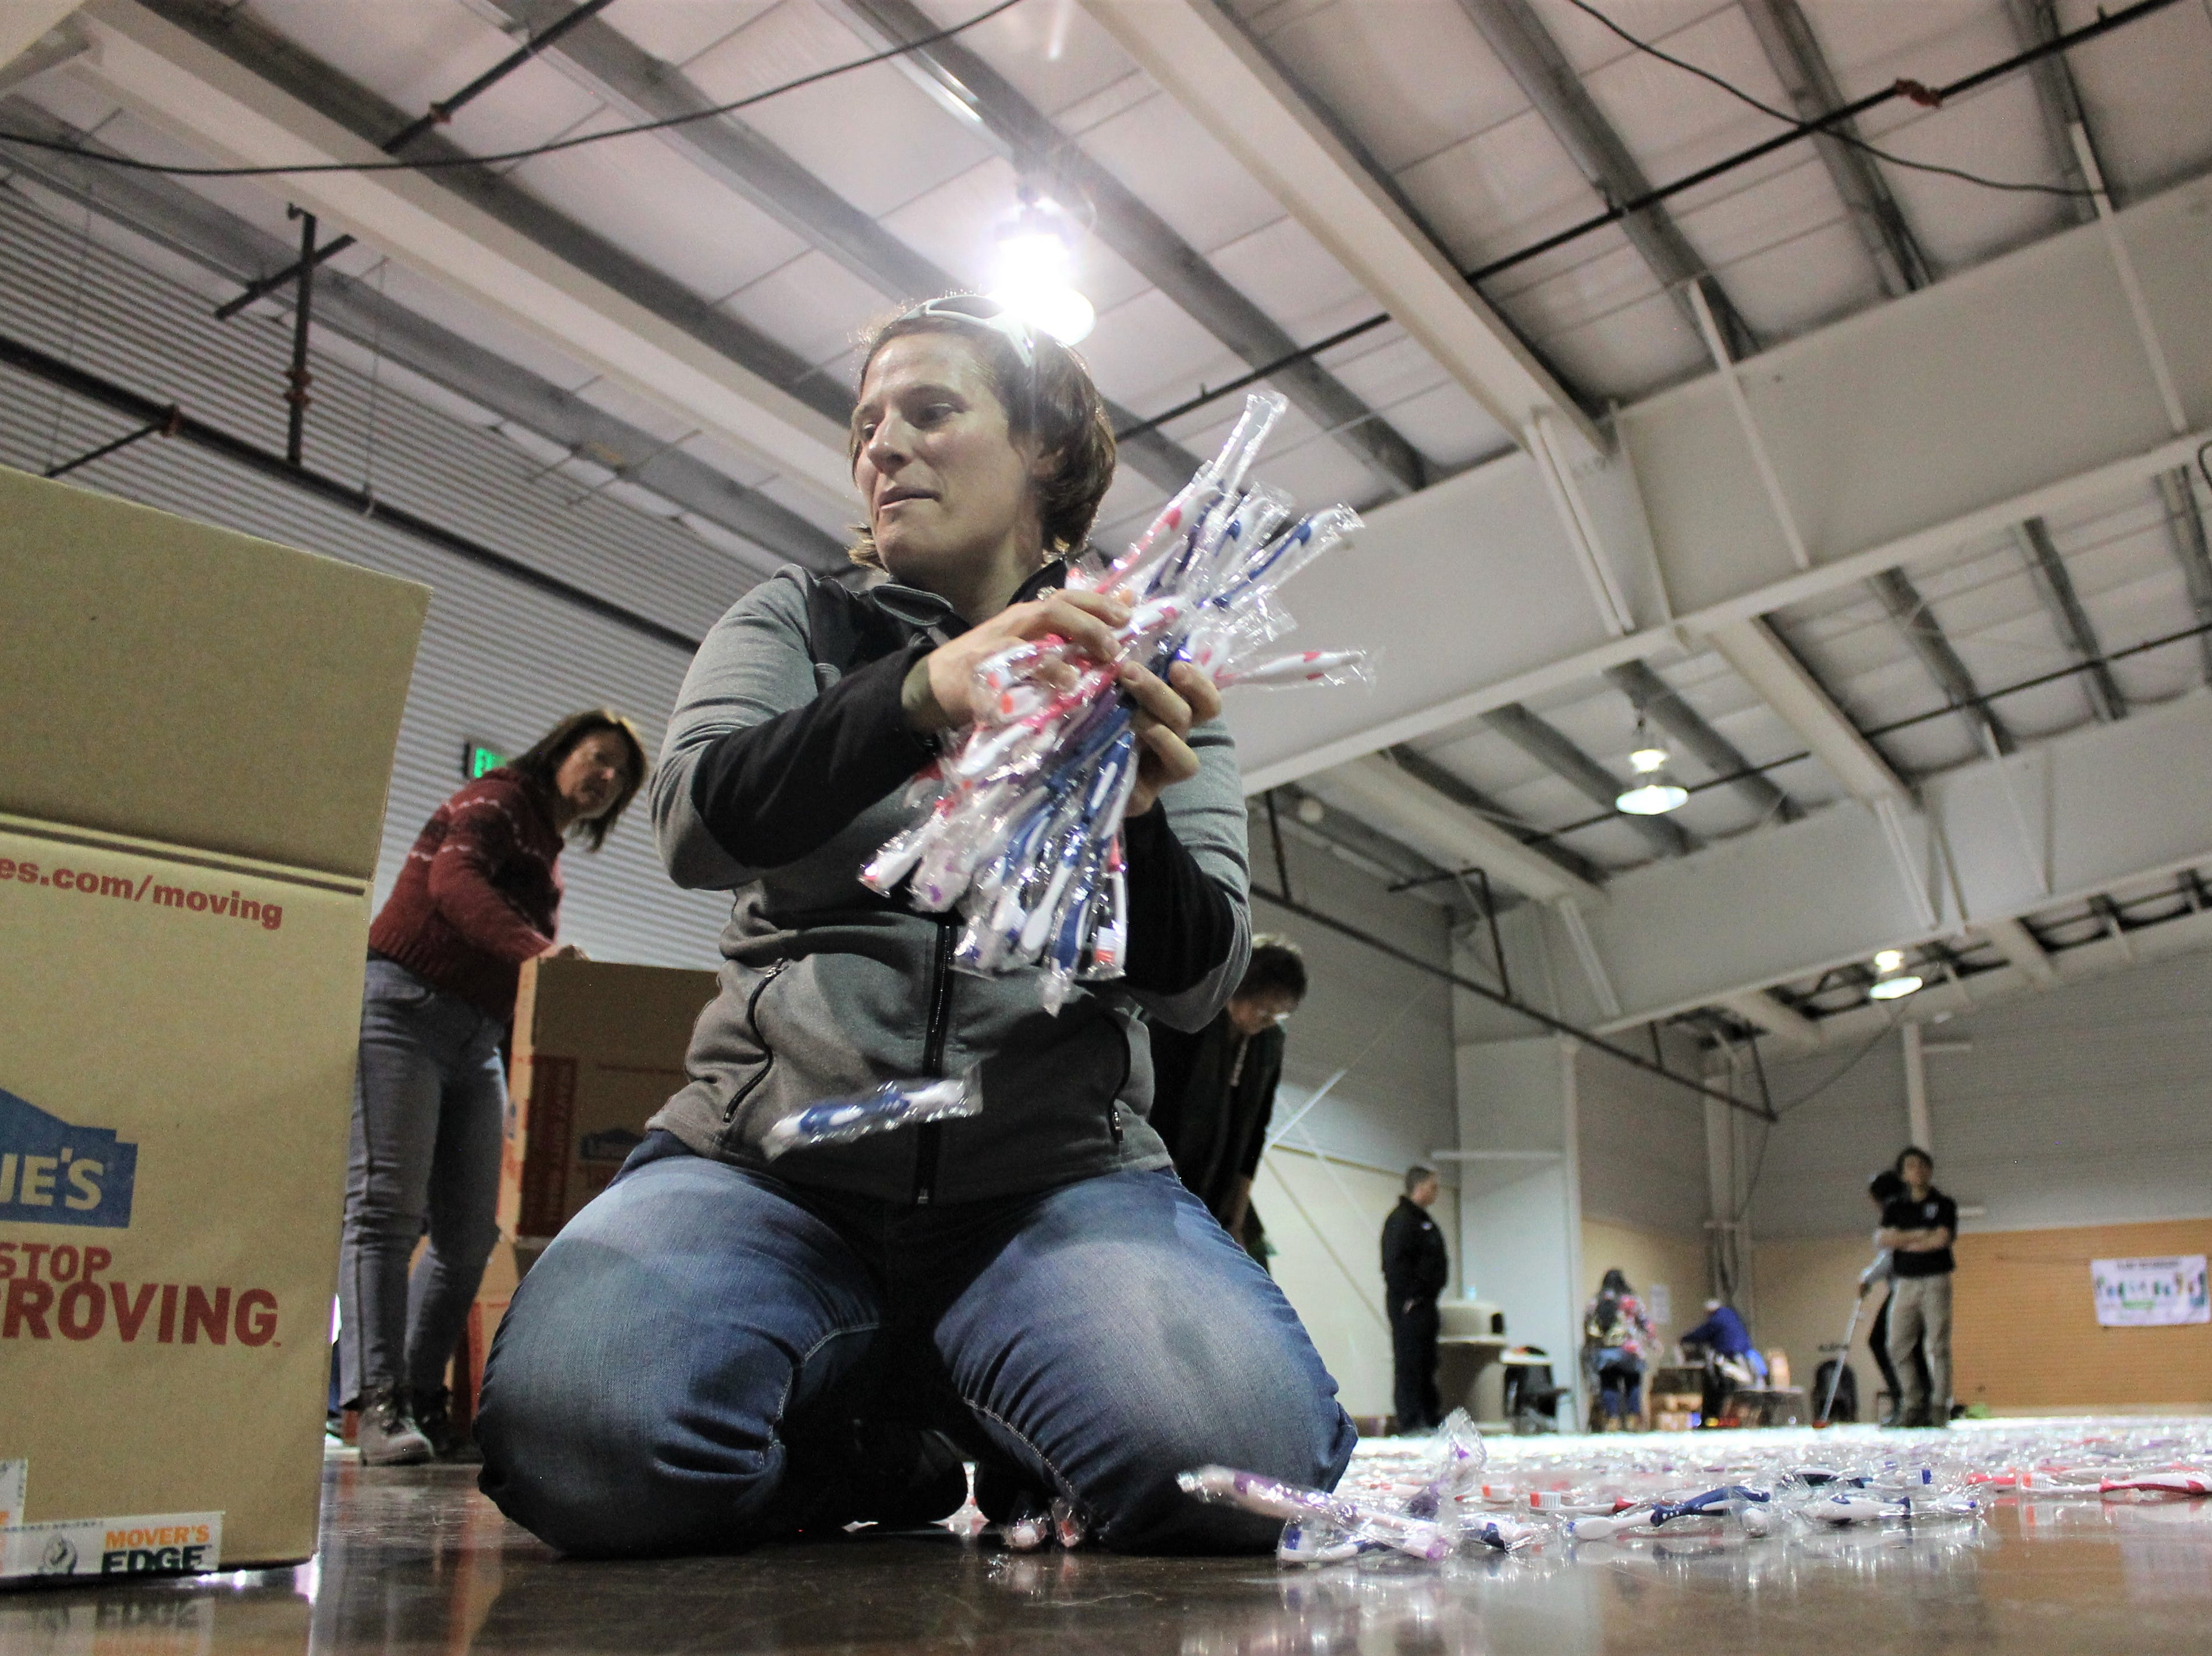 Katie Houghtlin puts piles of new toothbrushes into a box Feb. 26, 2019 at The Ranch Event Complex in Loveland. About 60 volunteers came together to break the Guinness World Record for most toothbrushes organized into a continuous line. At 41,769 toothbrushes, organizer Change Gangs: Virtual Giving Circles made history. The group will donate about 55,000 toothbrushes to kids in need across Colorado.